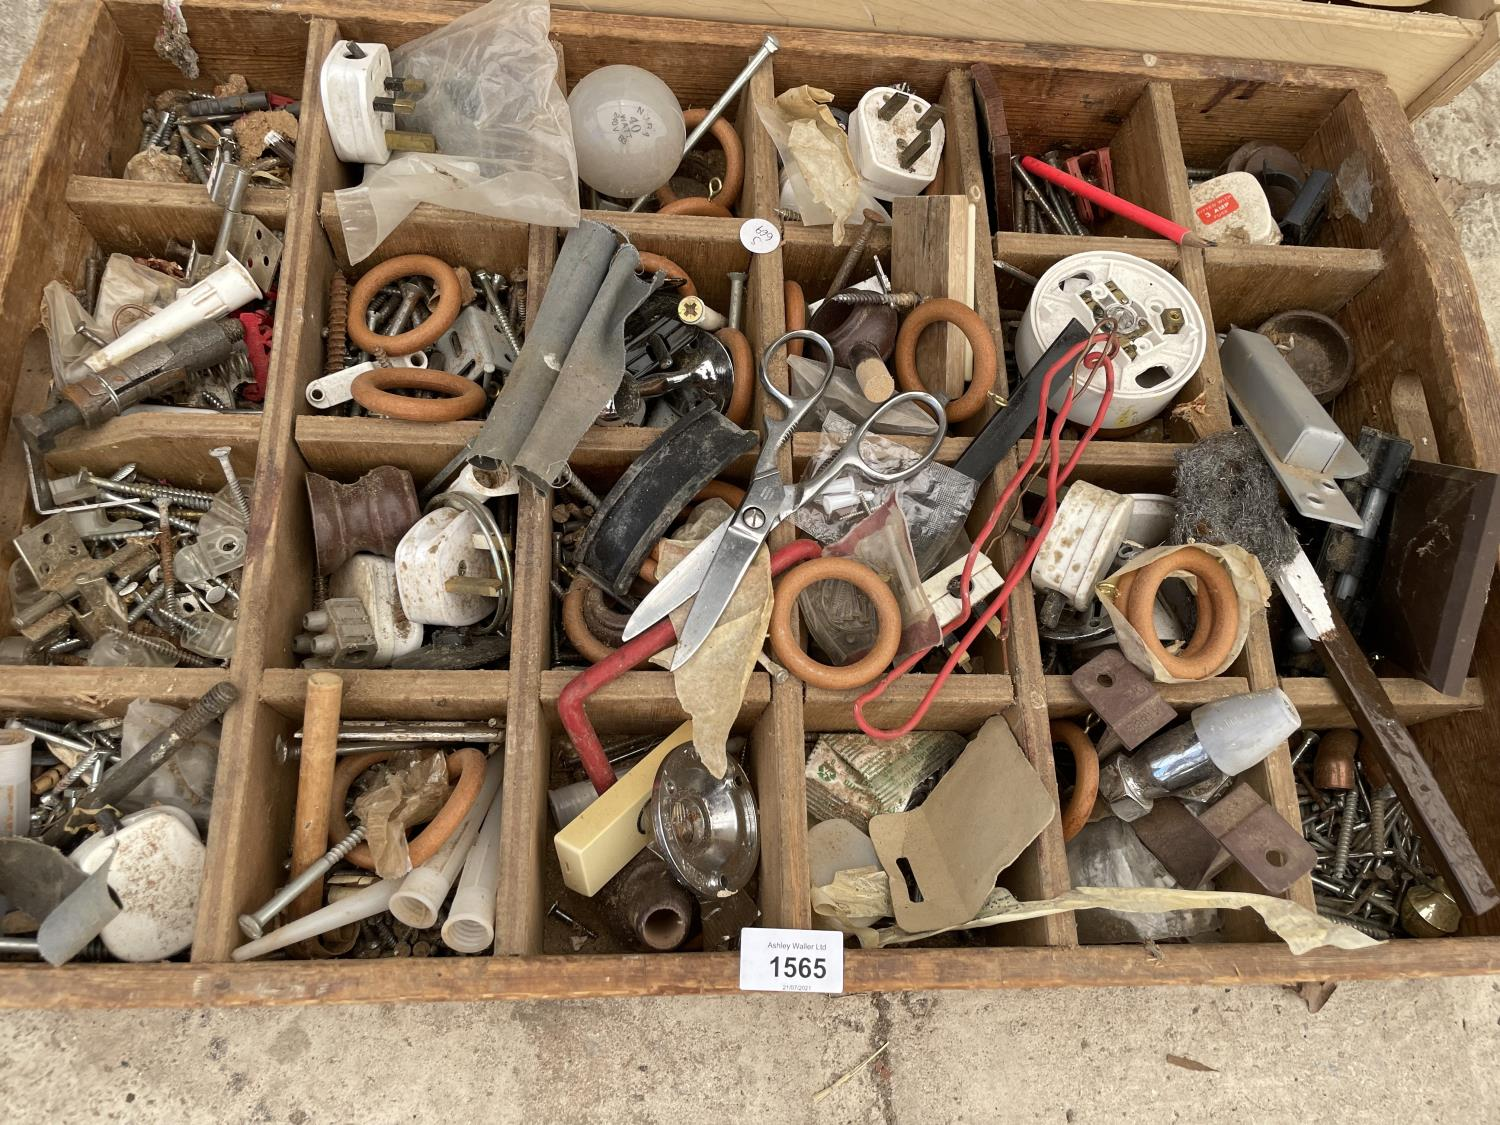 AN ASSORTMENT OF HARDWARE ITEMS TO INCLUDE SCREWS, PLUGS AND SHELVING BRACKETS ETC - Image 4 of 6